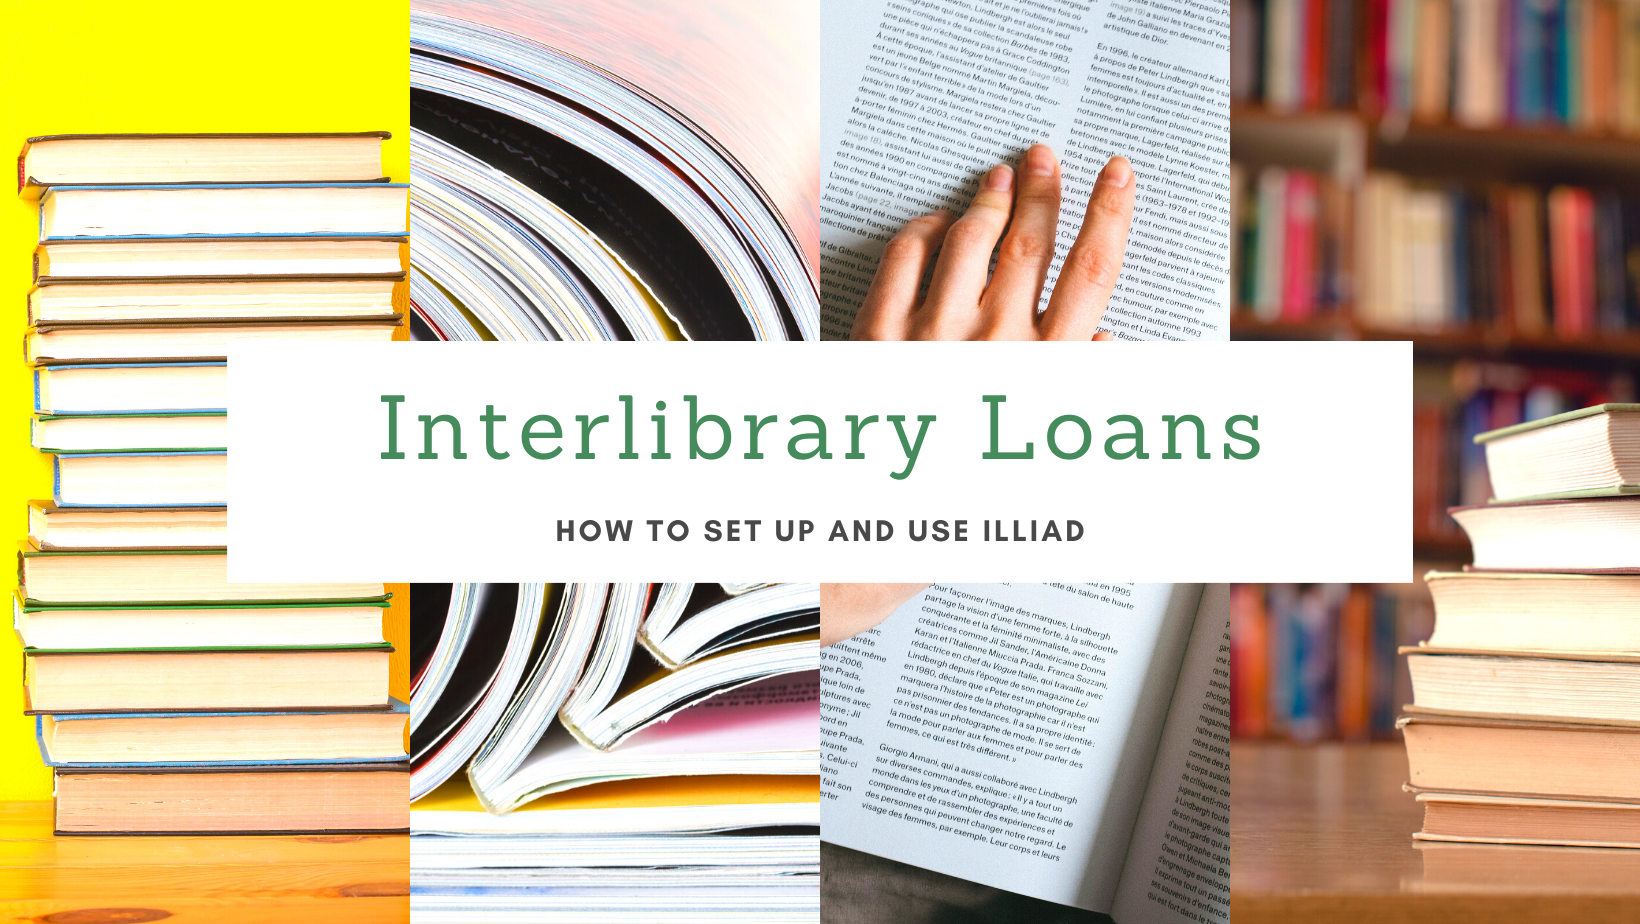 Interlibrary loans: how to set up and use ILLiad